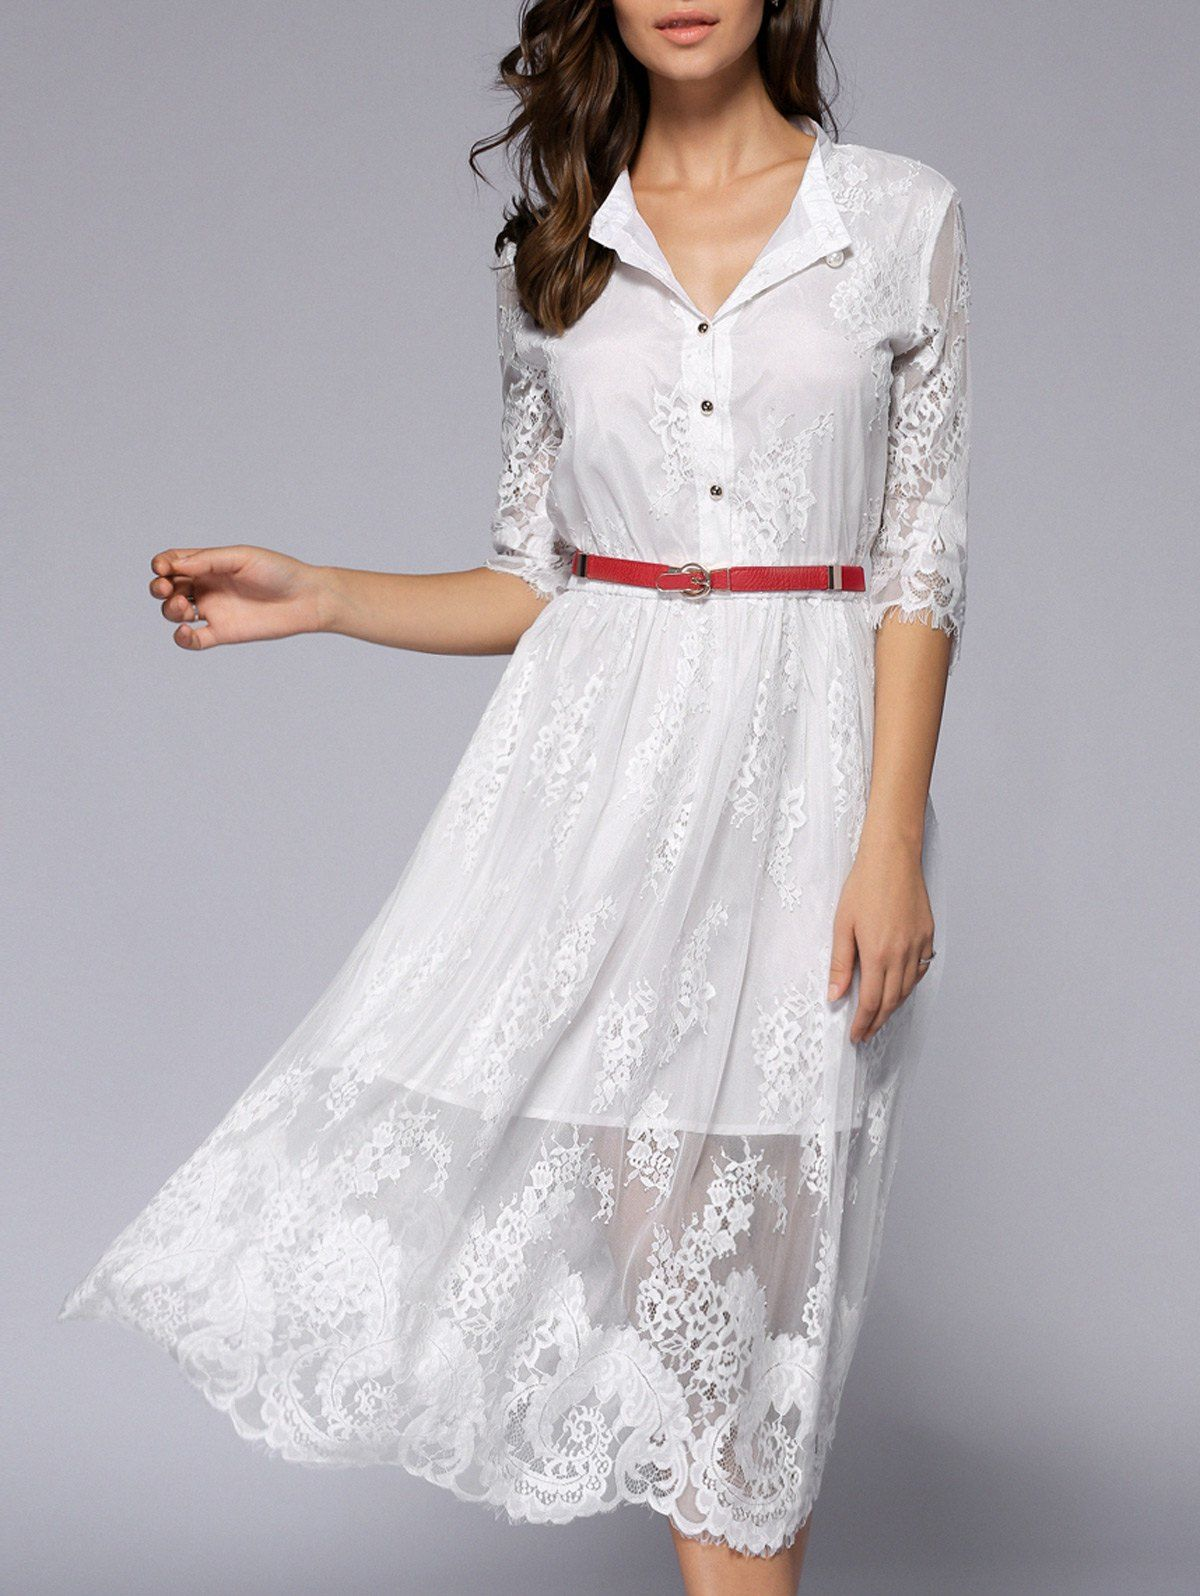 Lacework seethrough button dress diy pinterest dresses lace